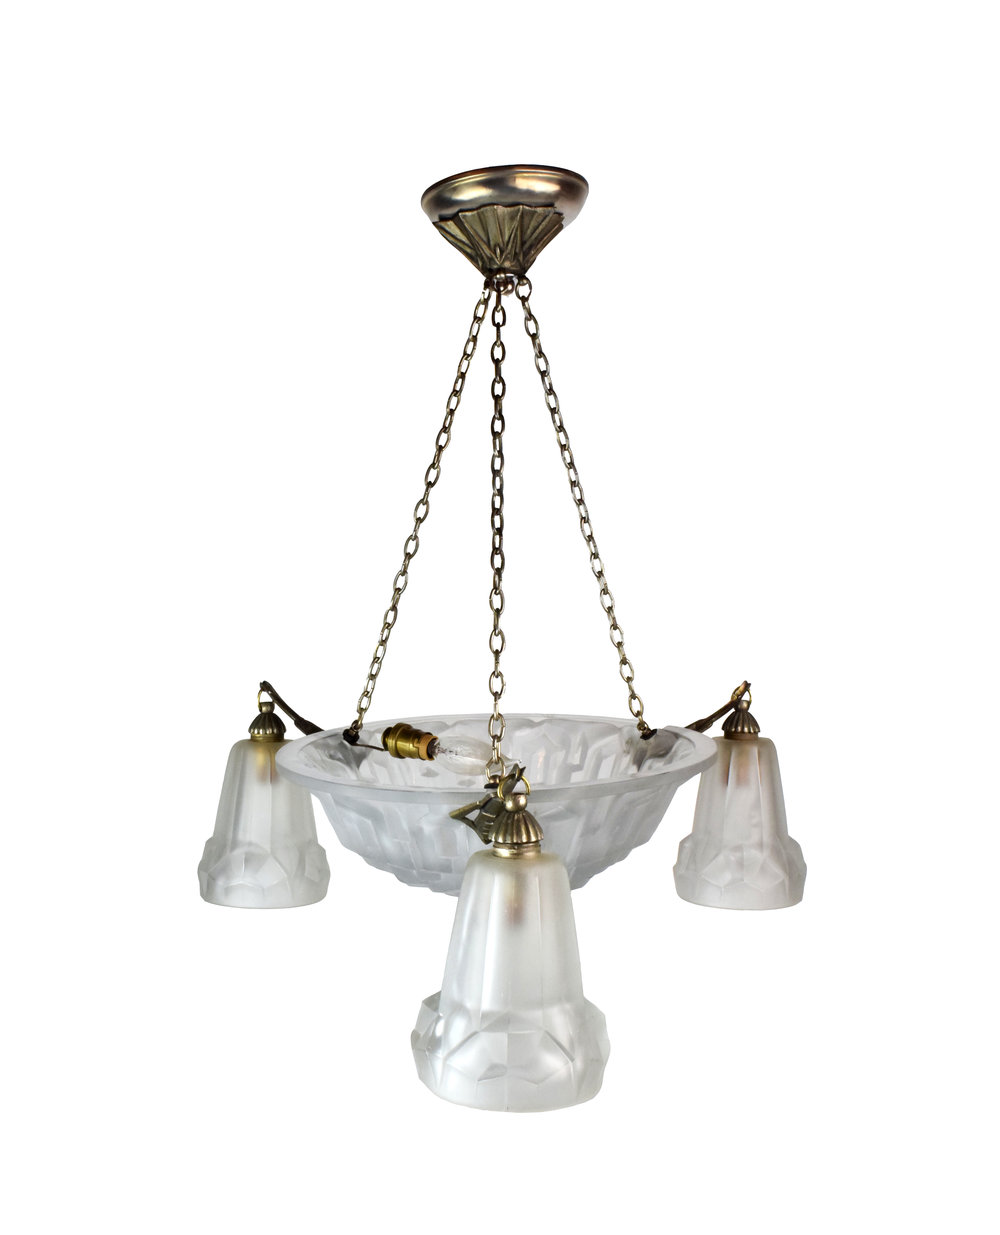 Art deco architectural antiques french art deco chandelier with 3 shades arubaitofo Choice Image